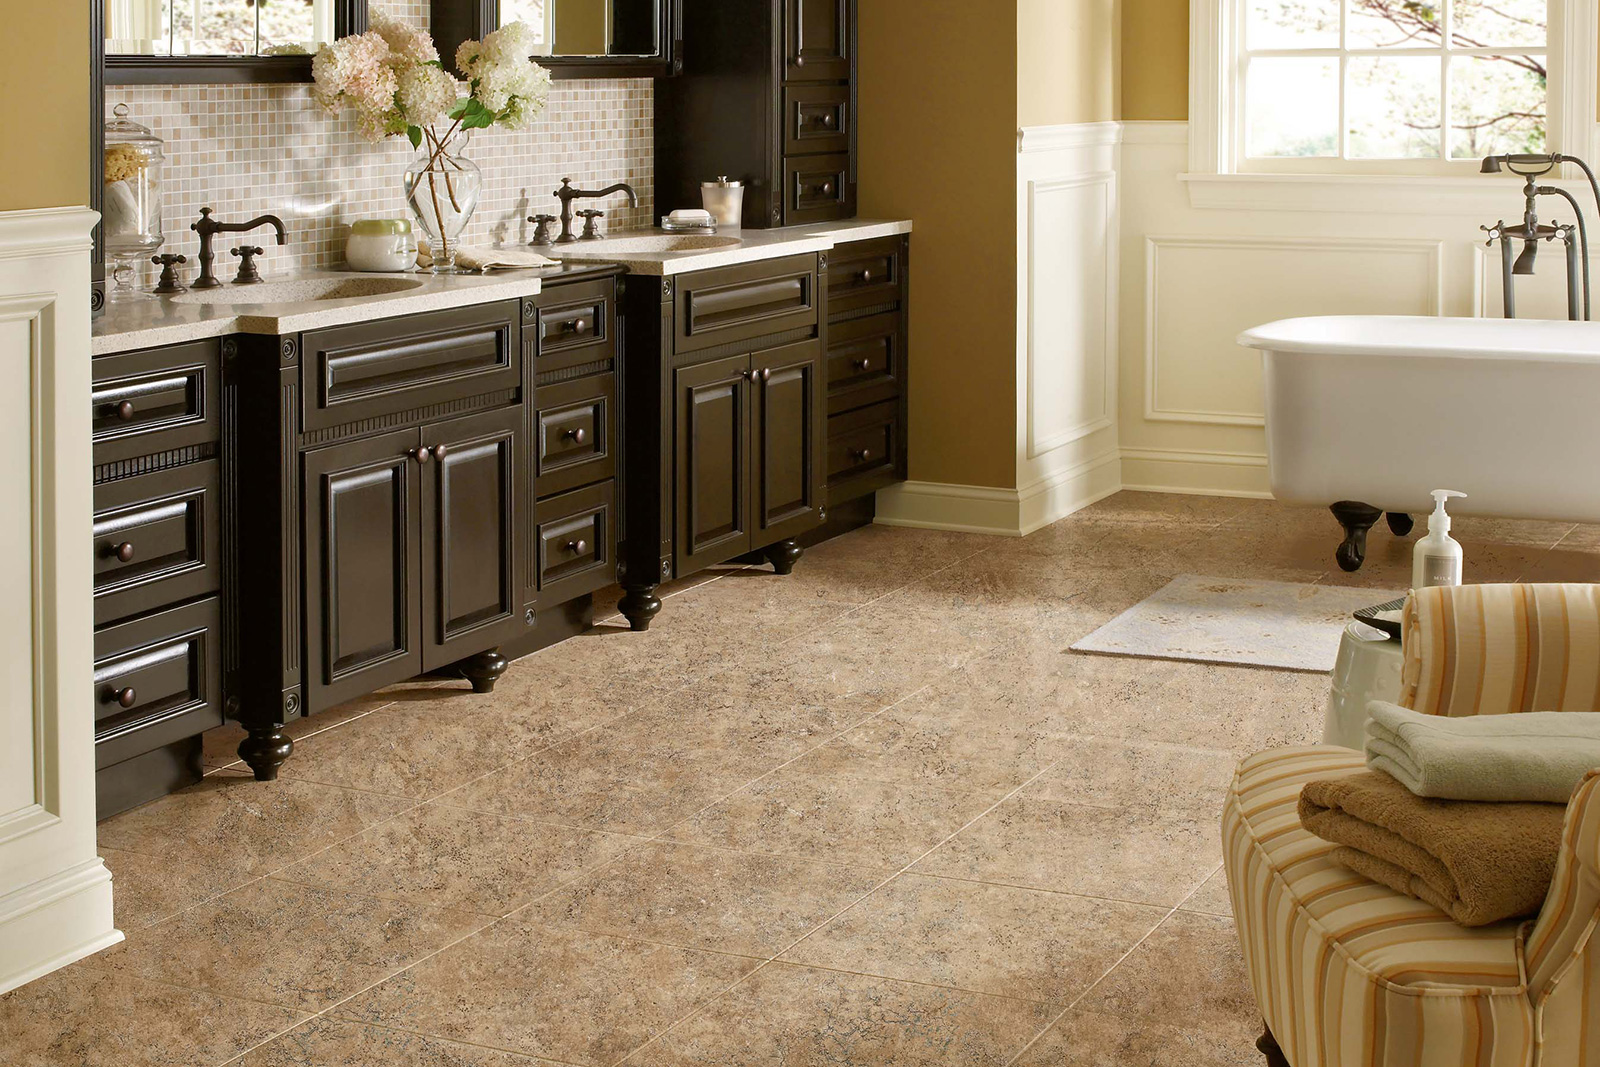 Bathroom Vinyl Flooring | Cheap Vinyl Bathroom Flooring